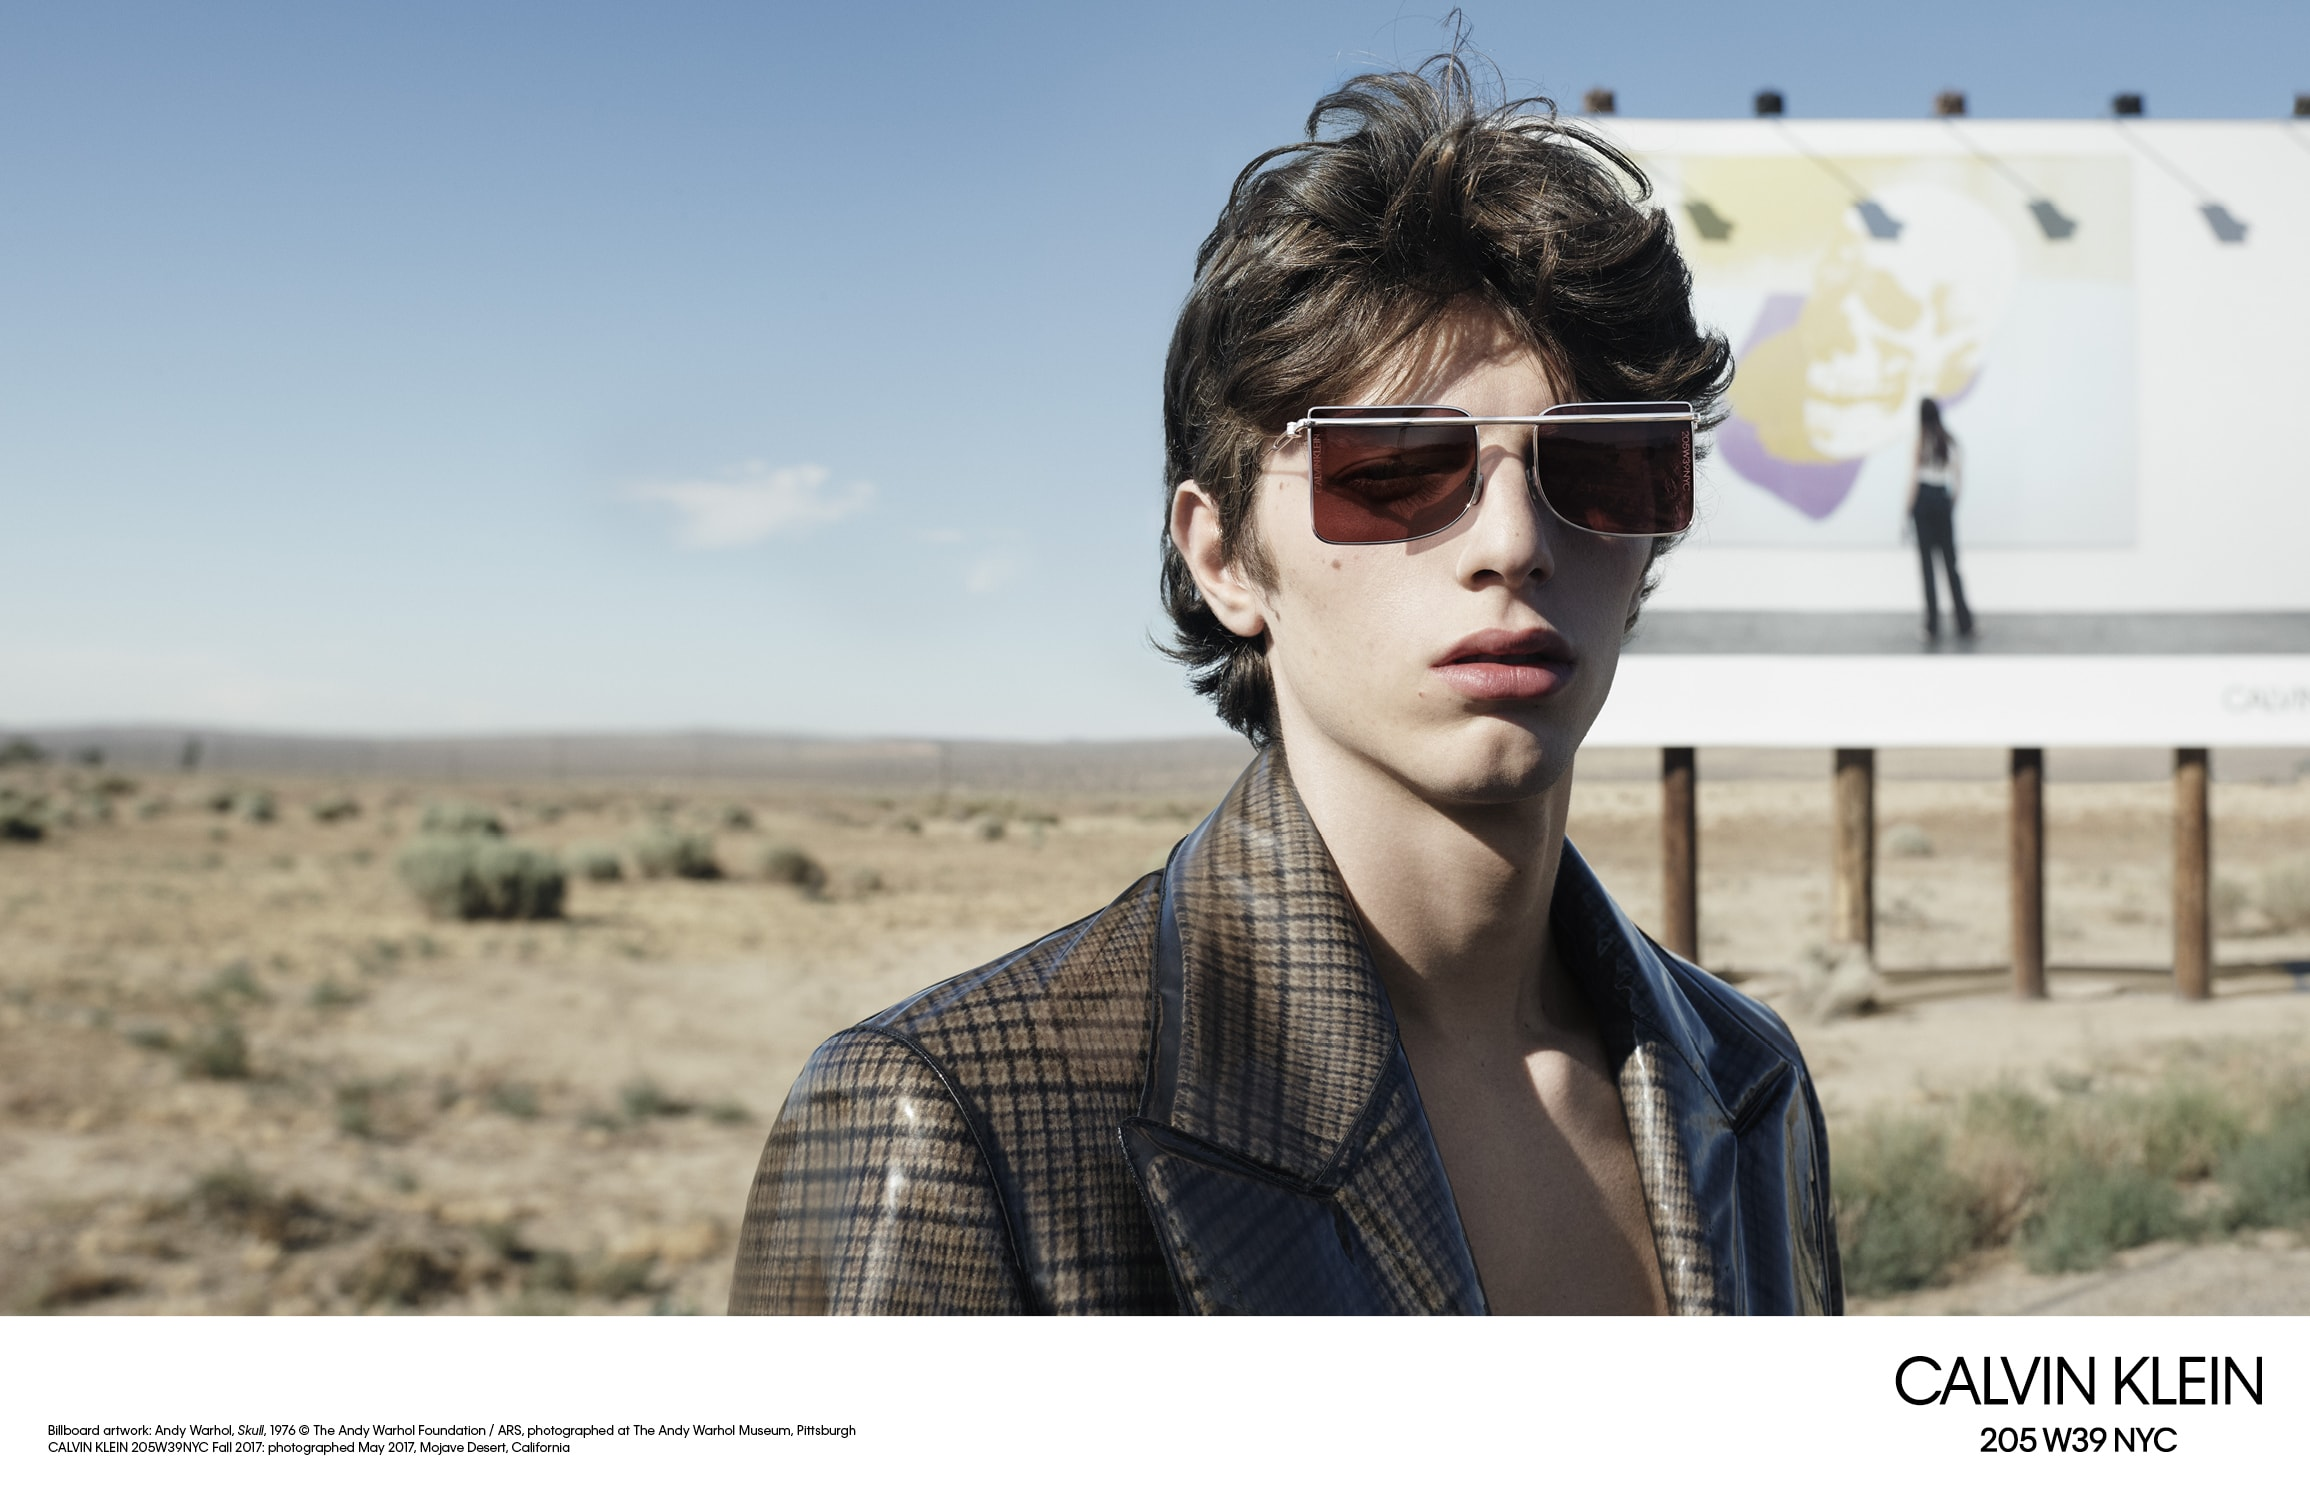 Calvin Klein Fall 2017 205W39NYC Campaign Calvin Klein Fall 2017 205W39NYC Campaign Vanity Teen Menswear & new faces magazine